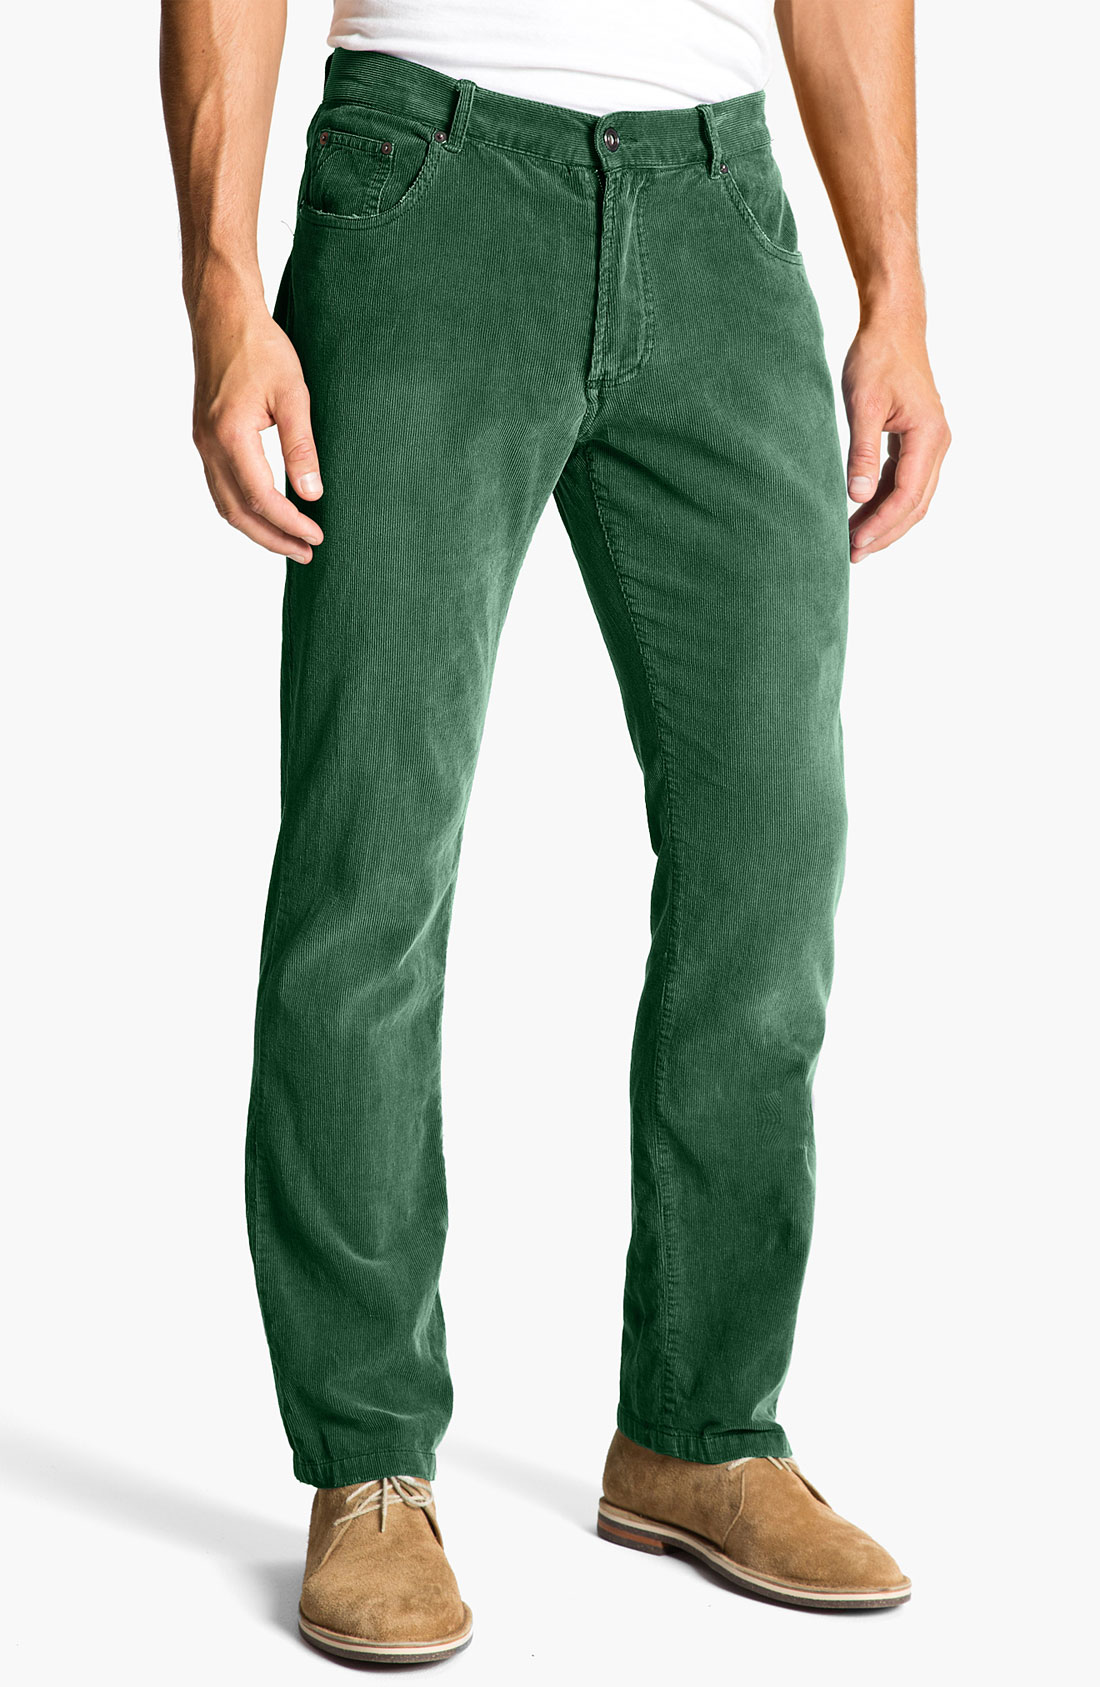 dexterminduwi.ga offers Corduroy Pants at cheap prices, so you can shop from a huge selection of Corduroy Pants, FREE Shipping available worldwide.